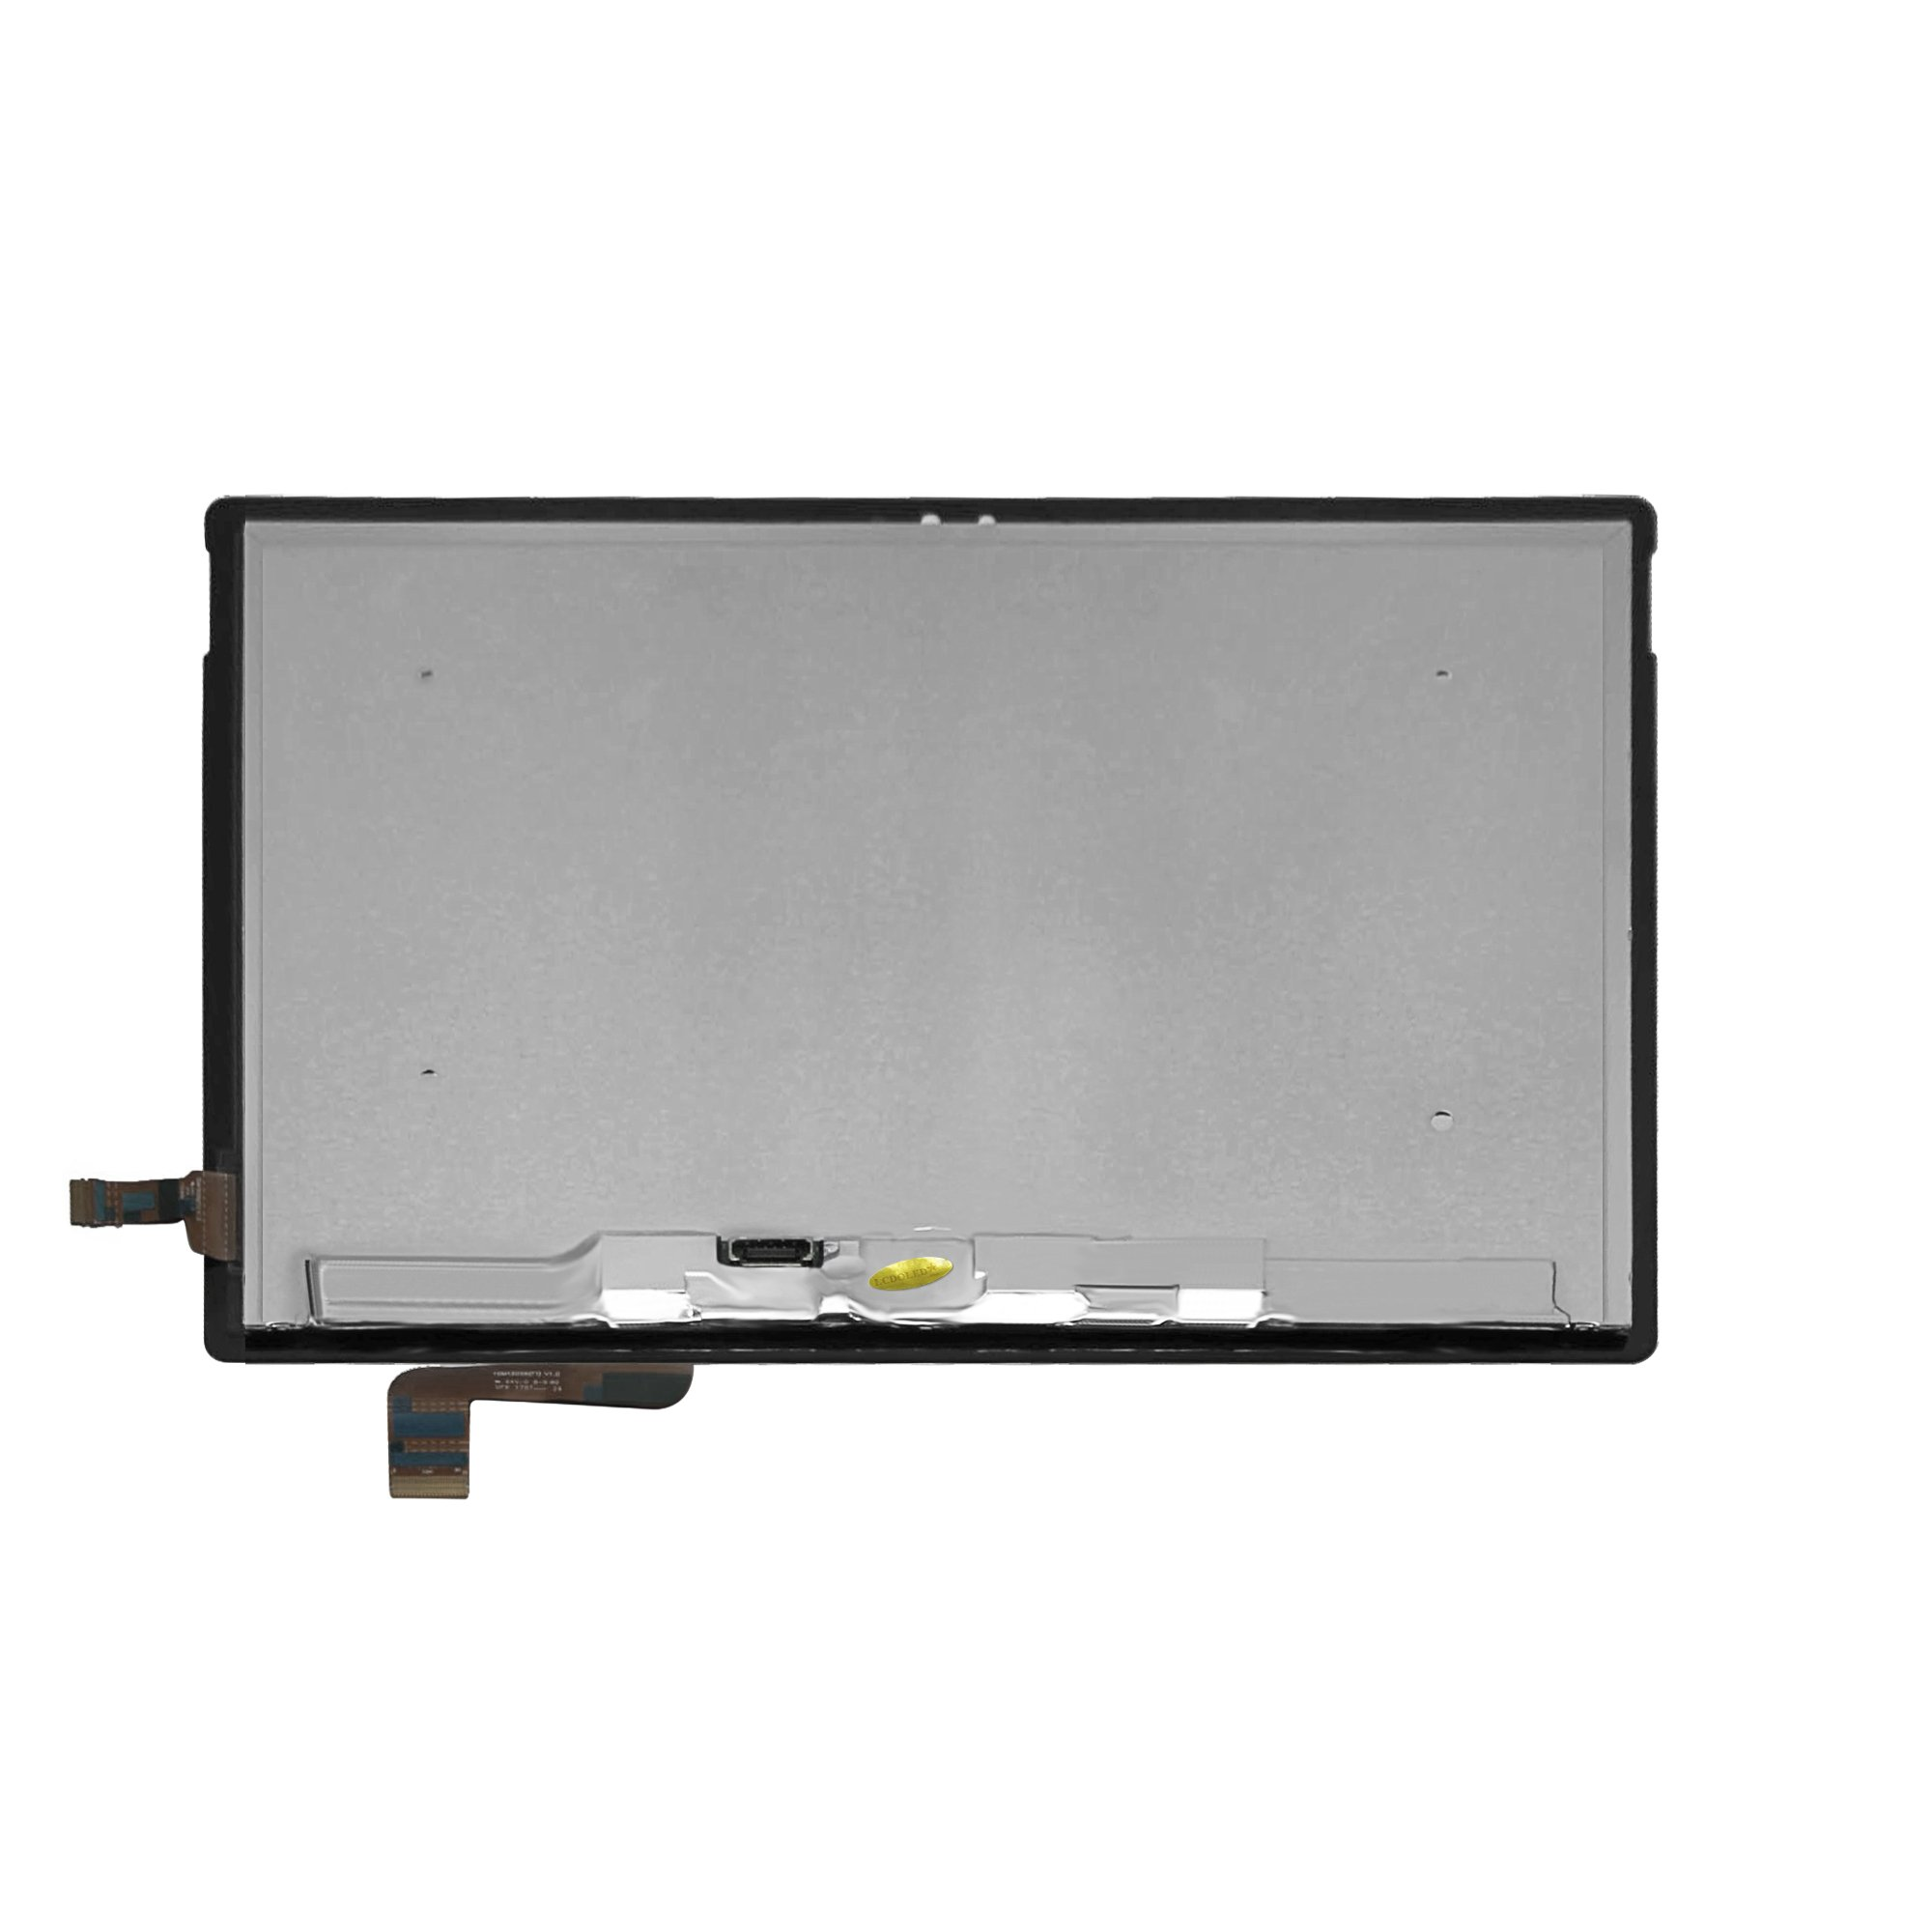 LCDOLED Replacement 13.5 inches 3000x2000 IPS VVX14P048M00 LED LCD Display Touch Screen Digitizer Assembly for Microsoft Surface Book 1 1703 1704 1705 (with Adhesive) by LCDOLED (Image #2)